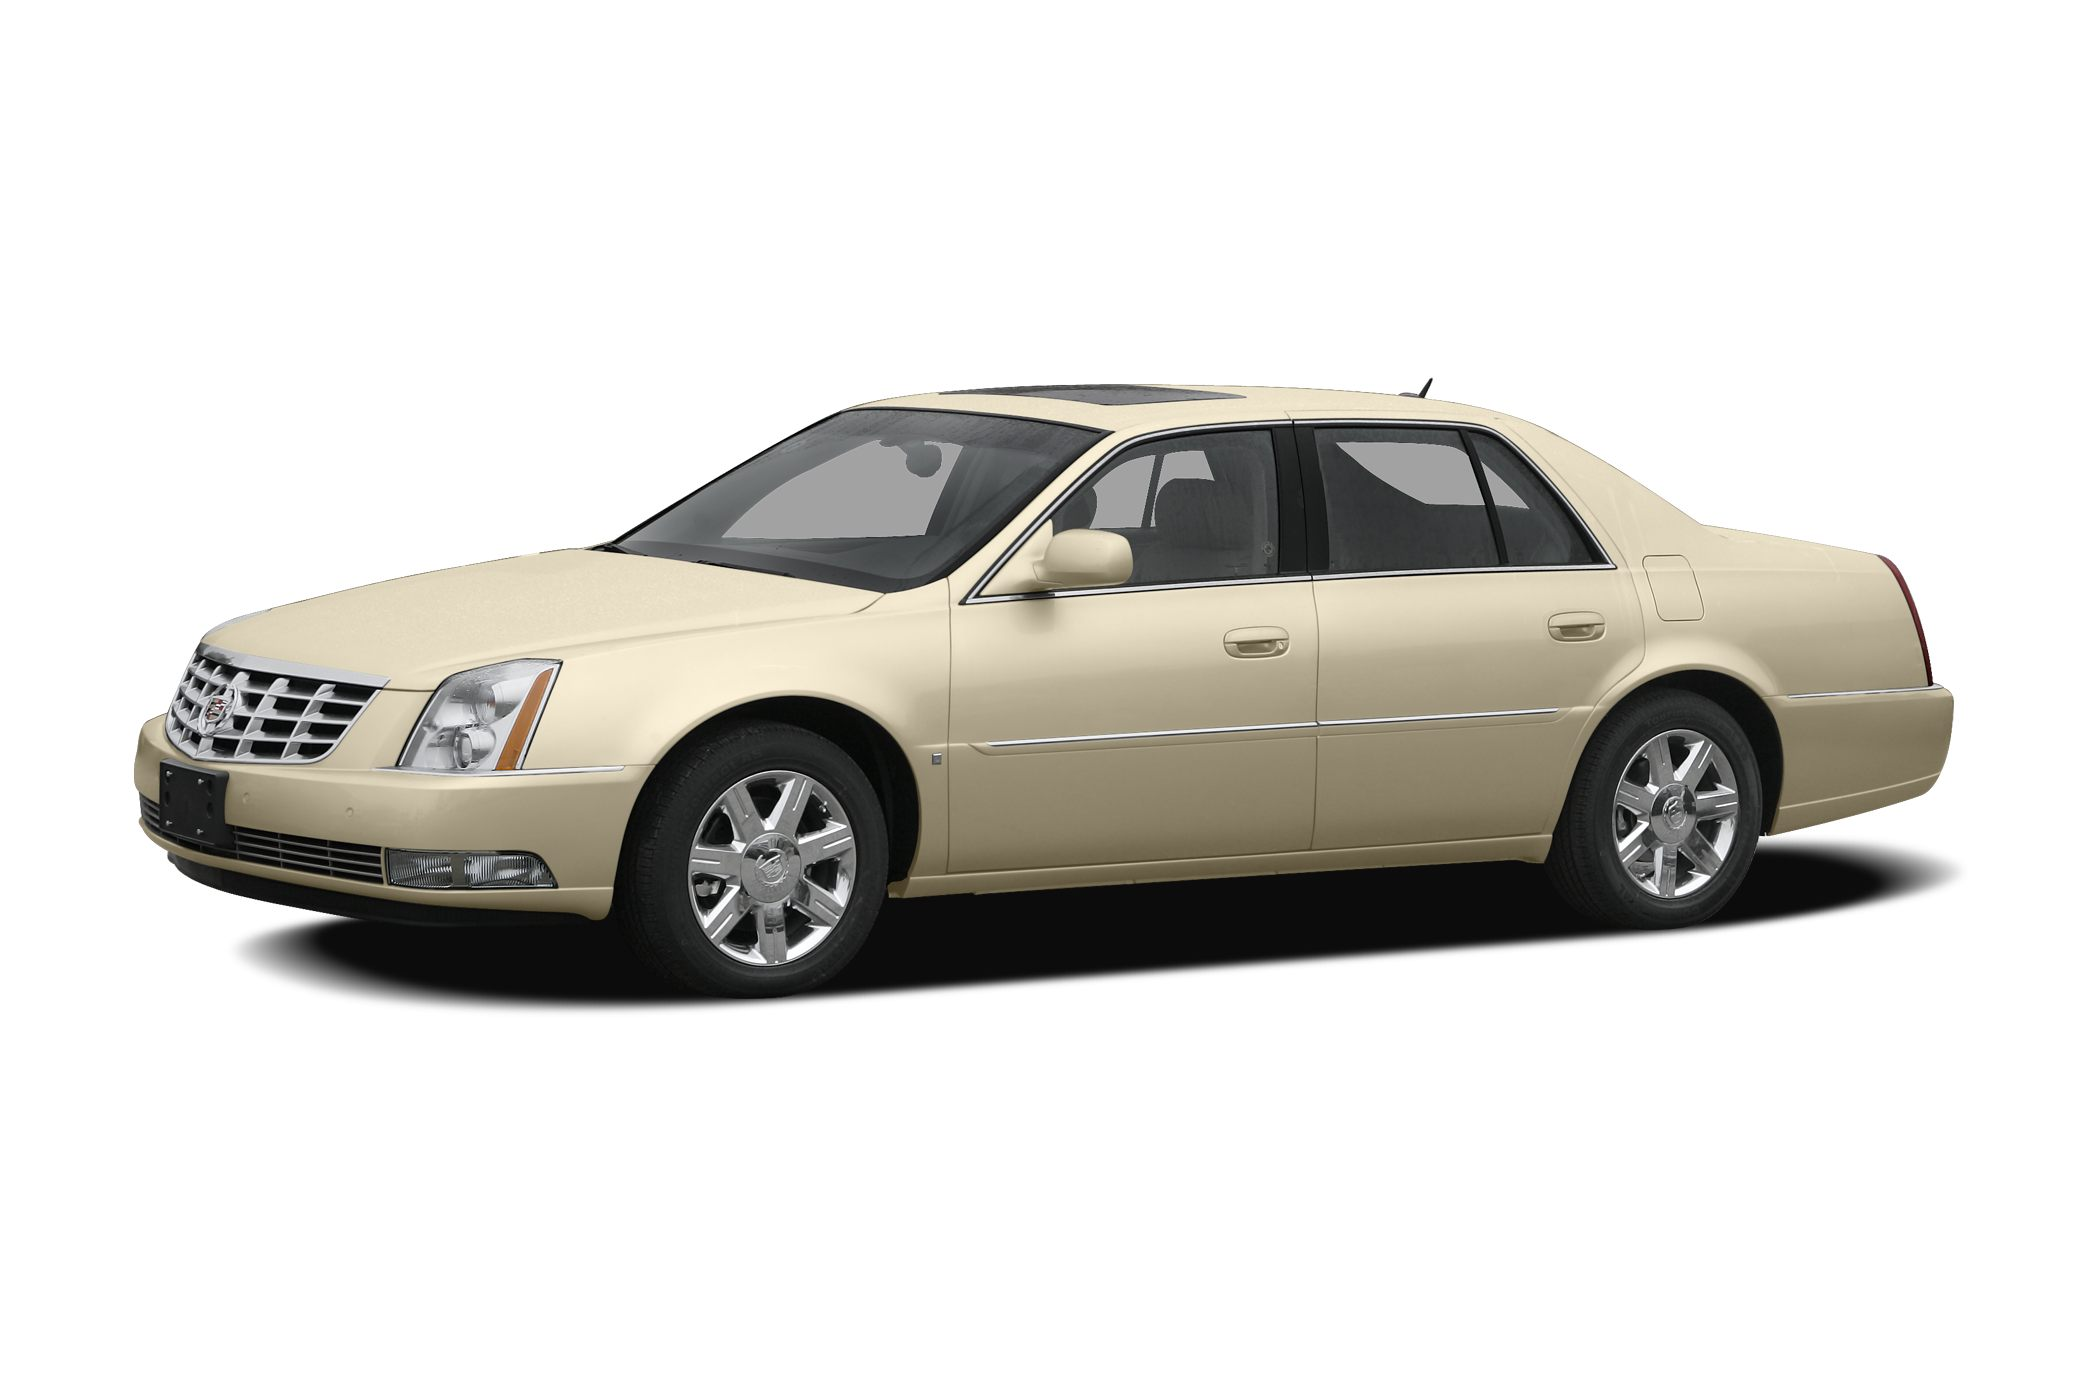 2009 Cadillac DTS W1SC Come see this 2009 Cadillac DTS w1SC It has a Automatic transmission and